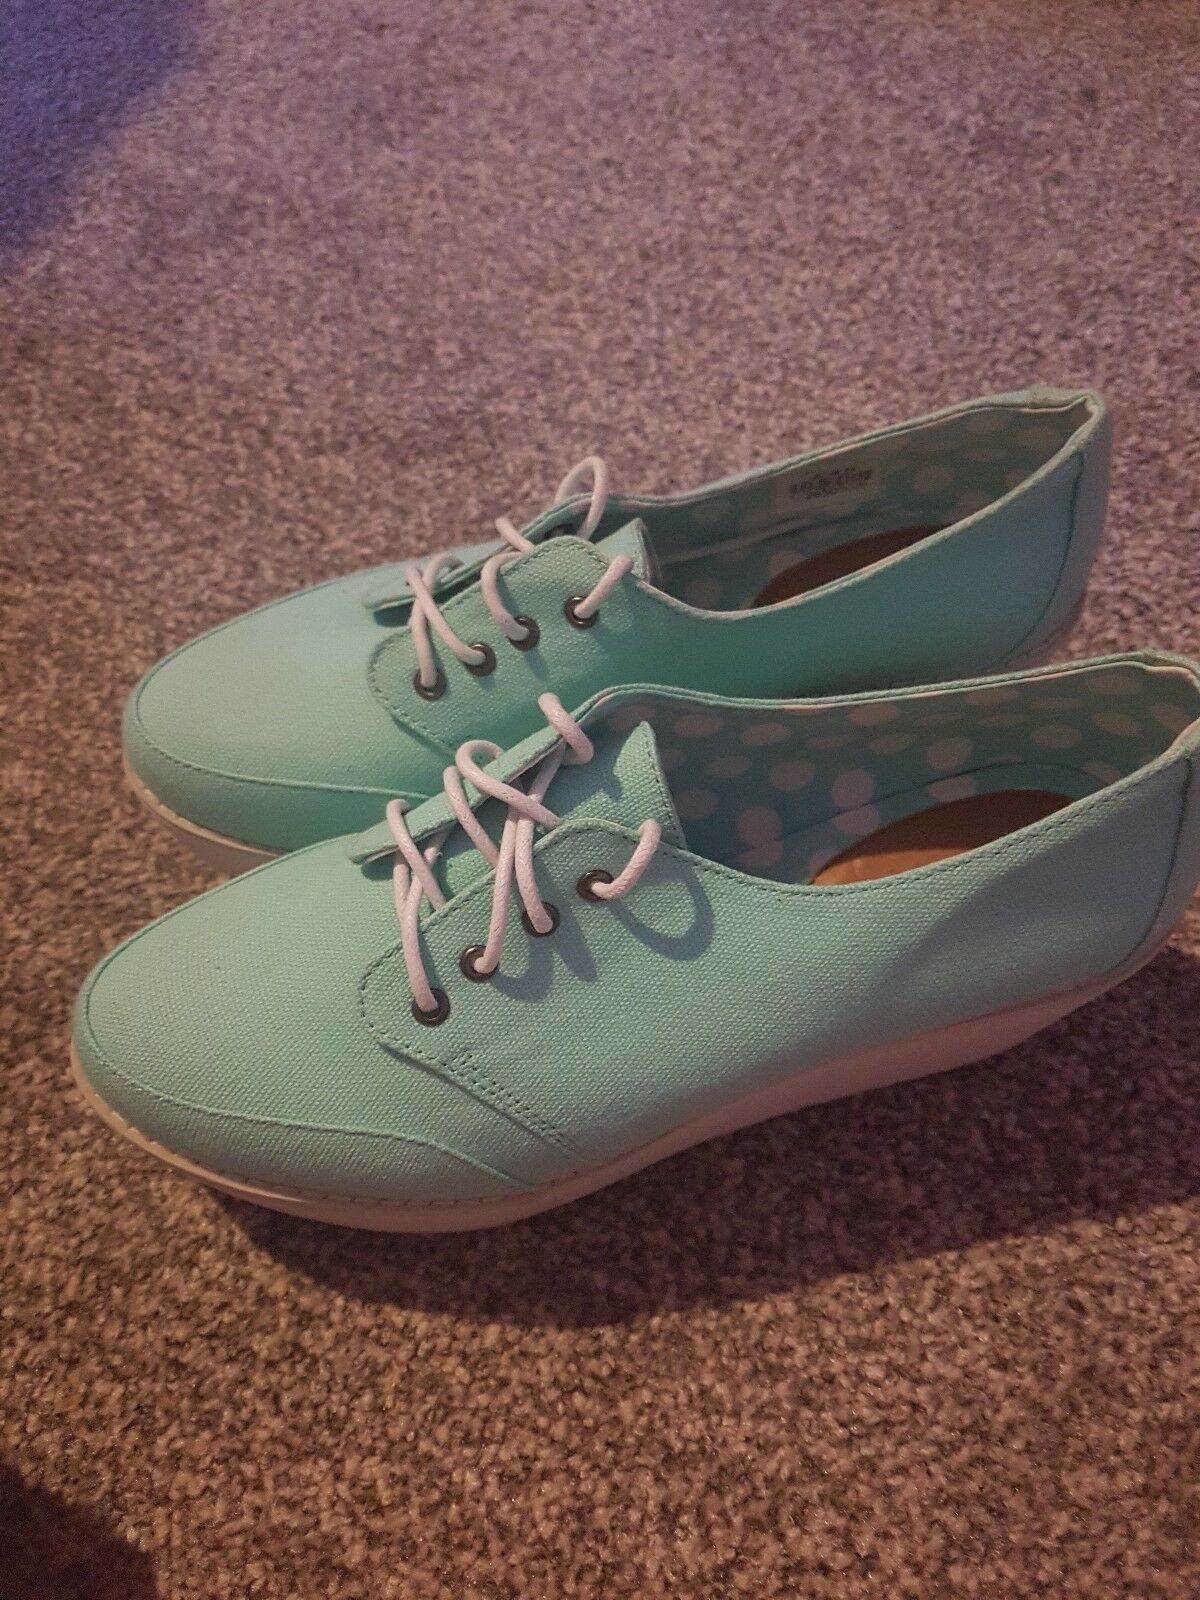 Womens size 7 mint green wedge shoes